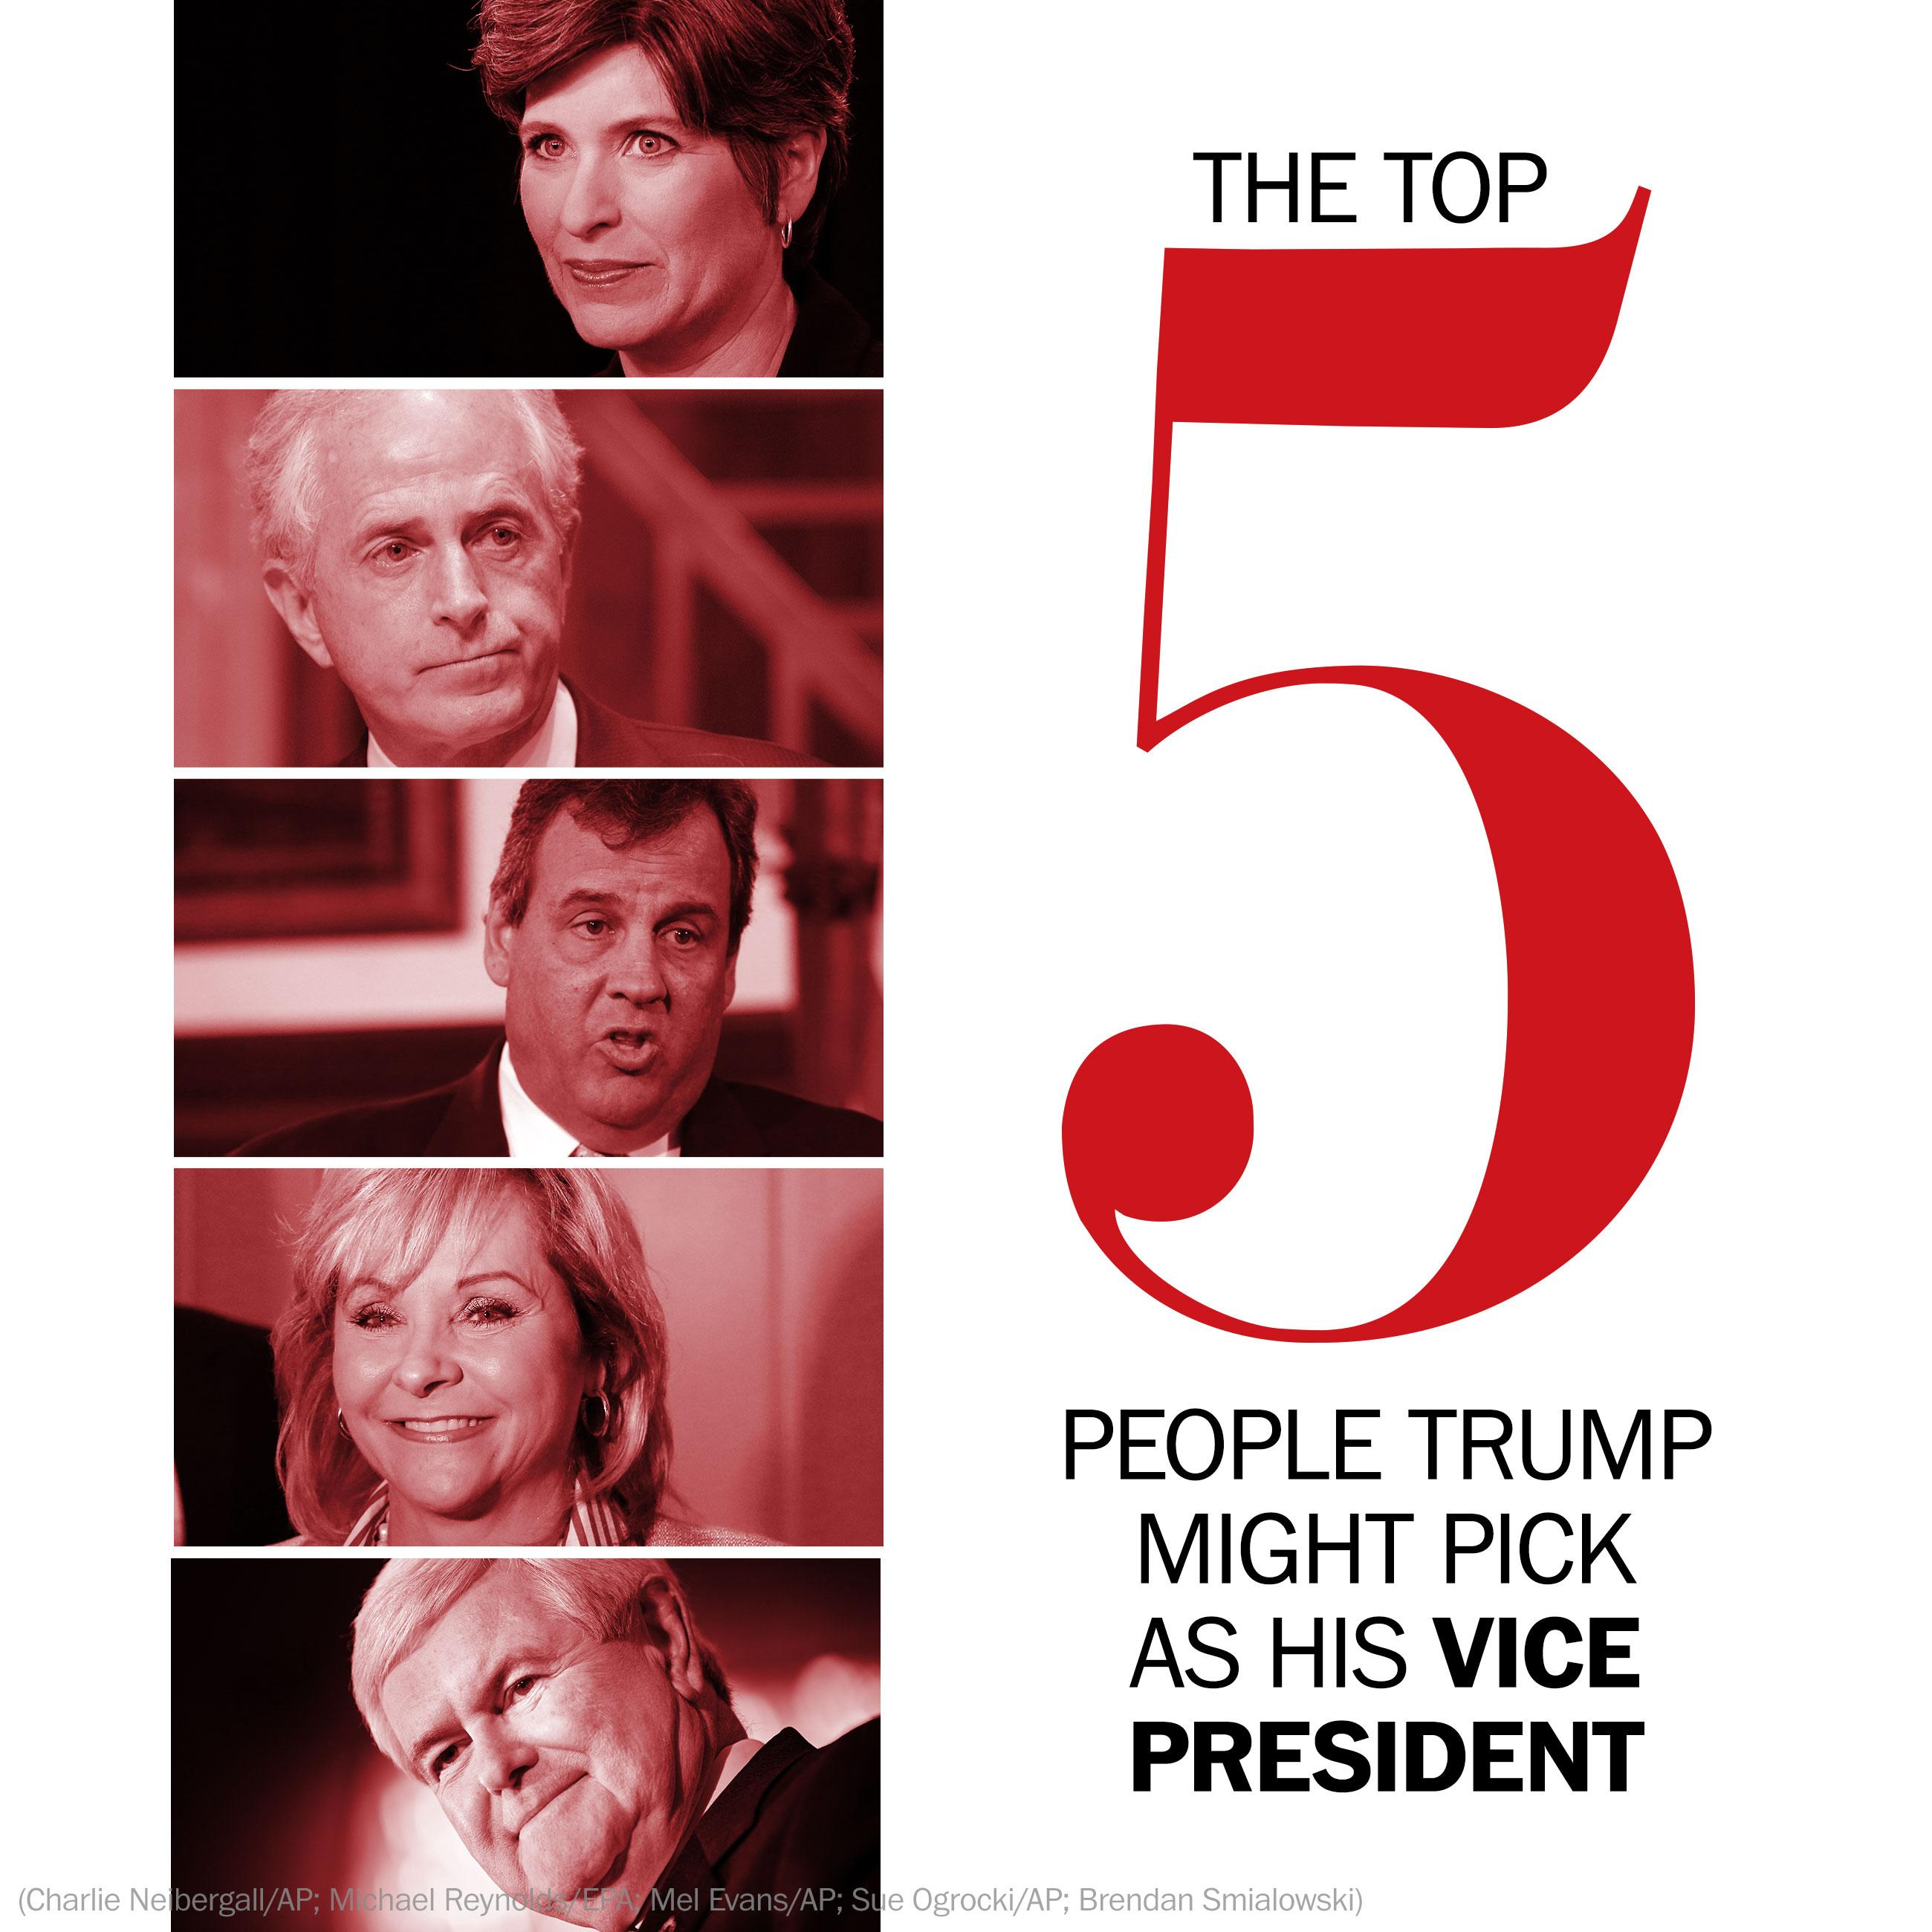 The top 5 people Donald Trump might pick as his vice president